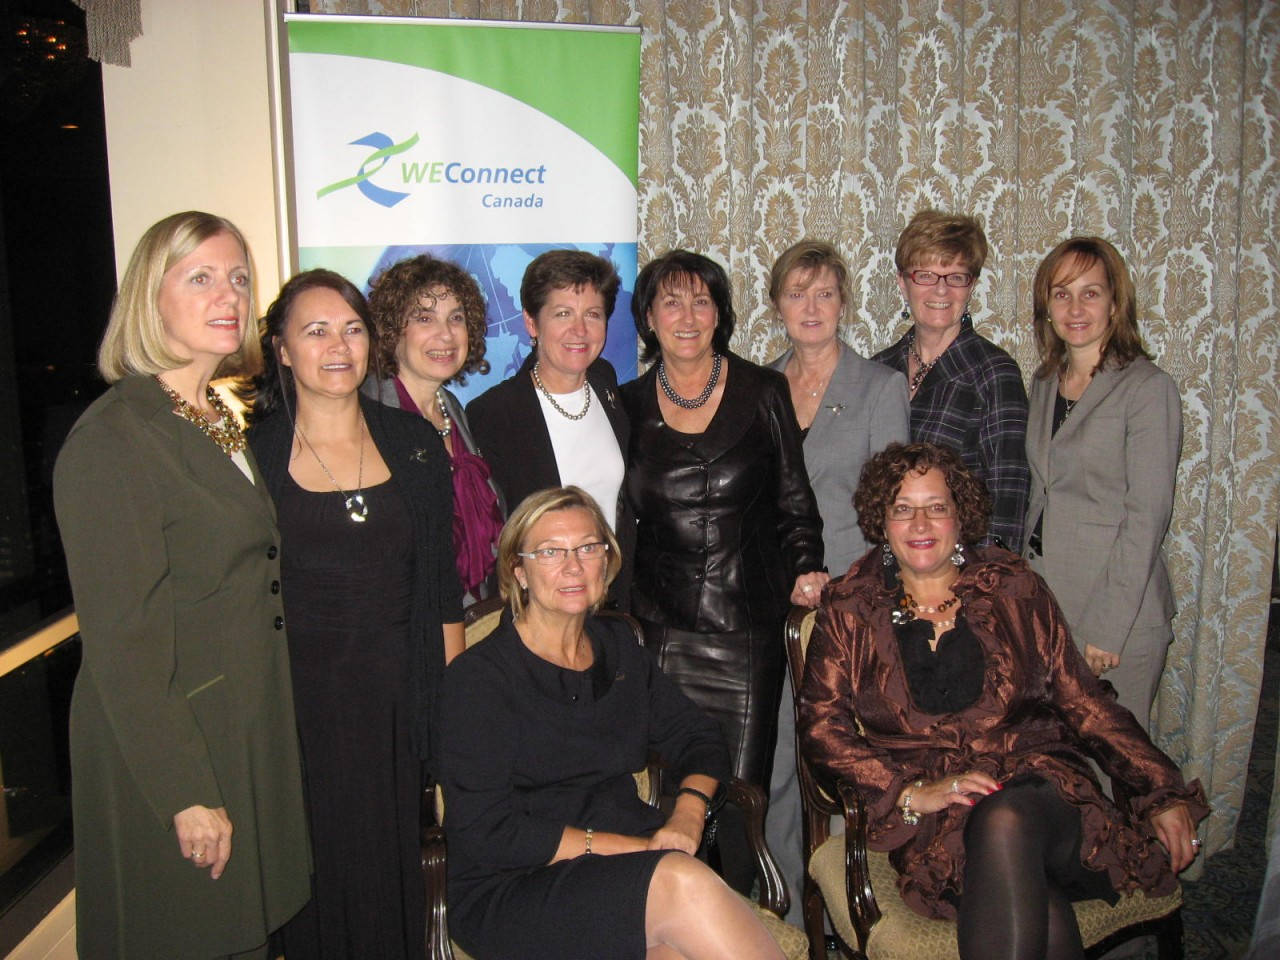 Award winners with WEConnect Canada Chair, Executive Director and Lead Strategist for WBEs.